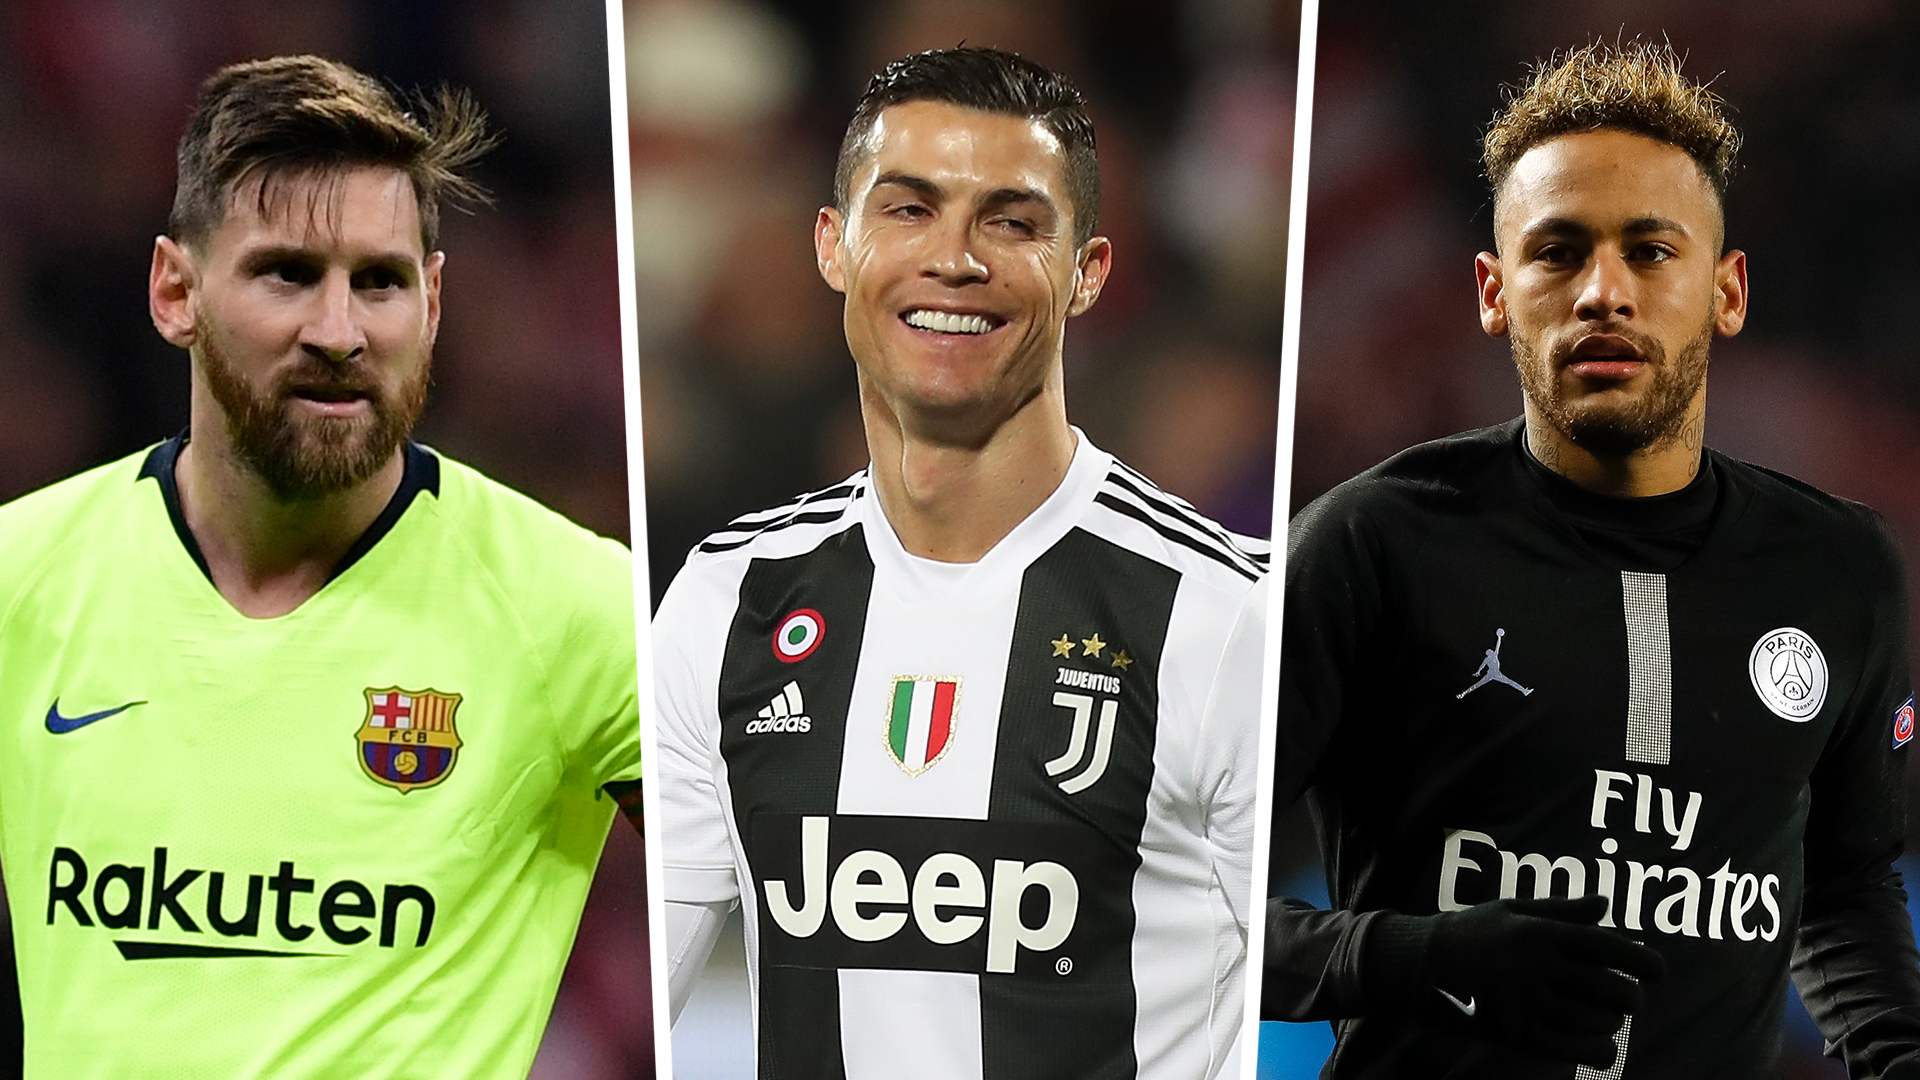 Fifa Player Ratings History How Cristiano Ronaldo Lionel Messi And Neymar S Stats Have Changed Goal Com